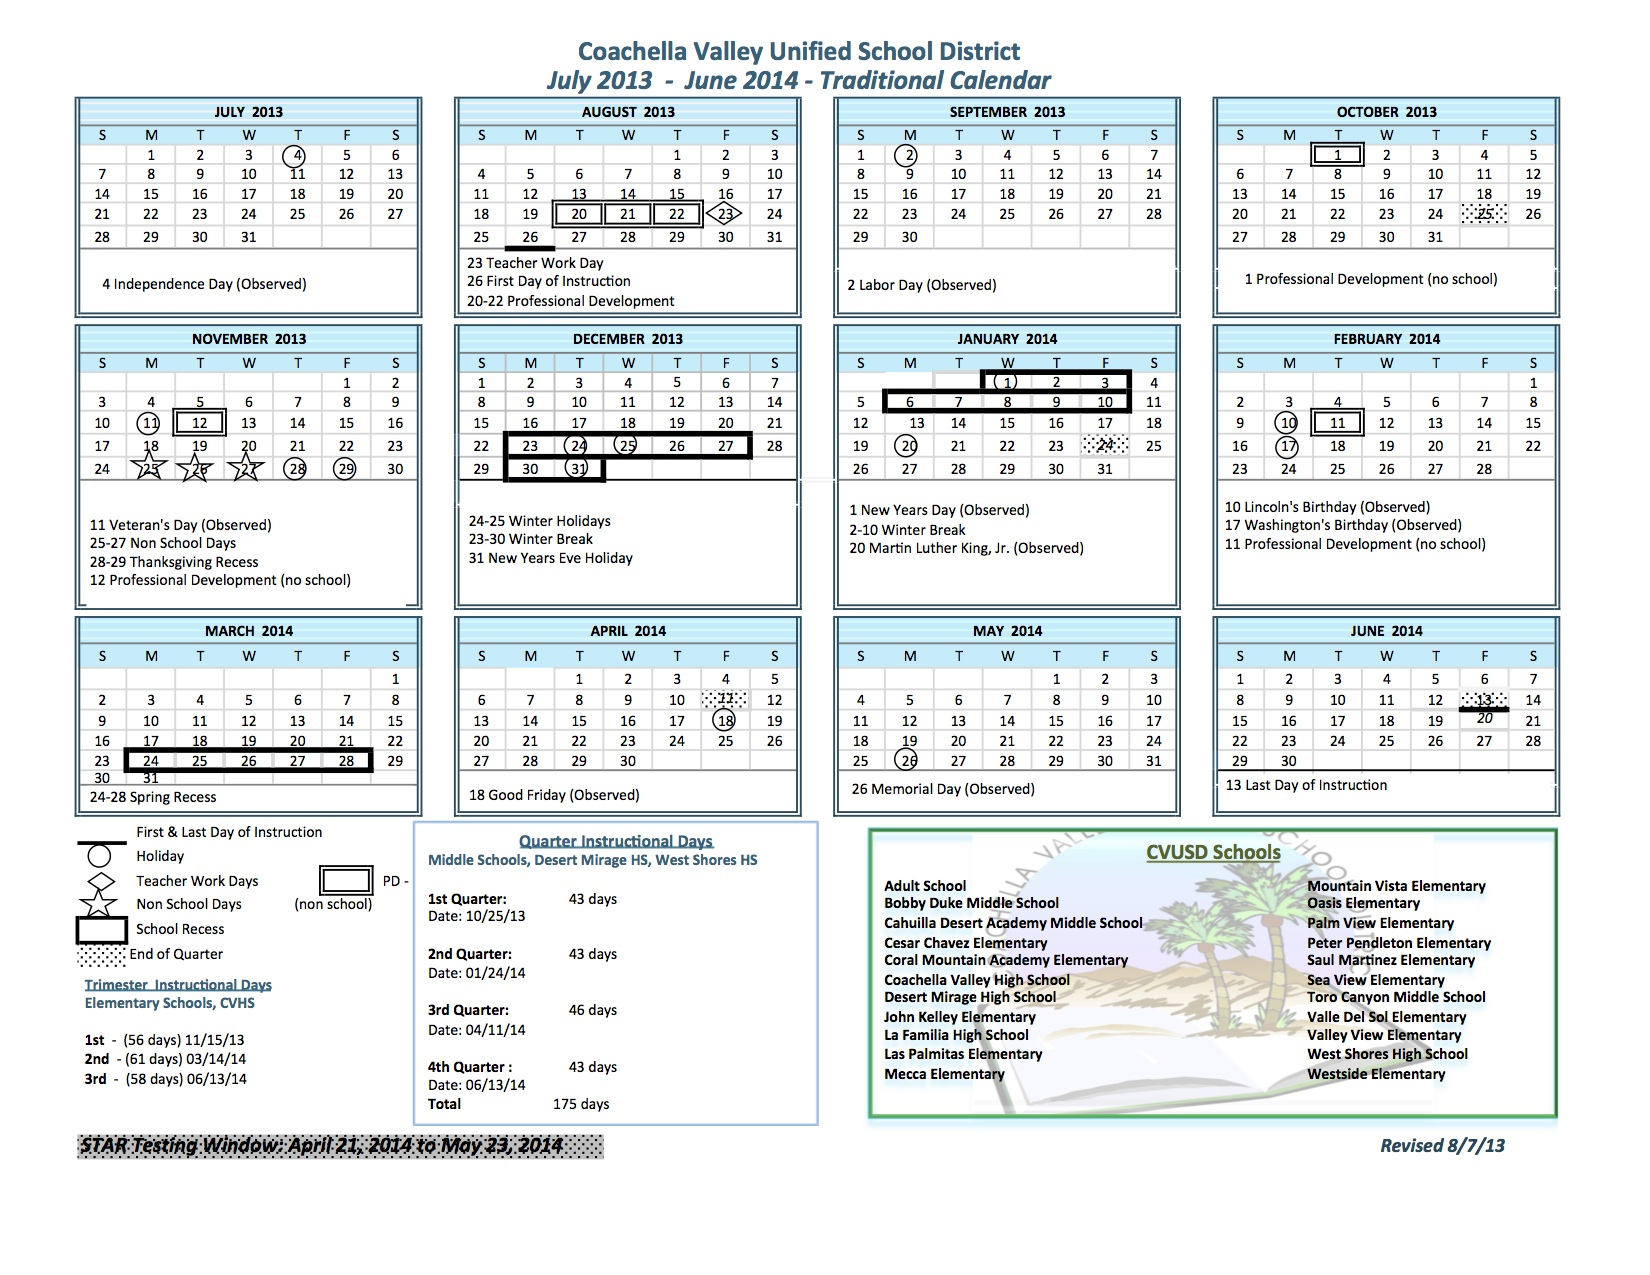 Traditional Calendar - Coachella Valley Unified School District Intended For Martinez Unified School Calendar